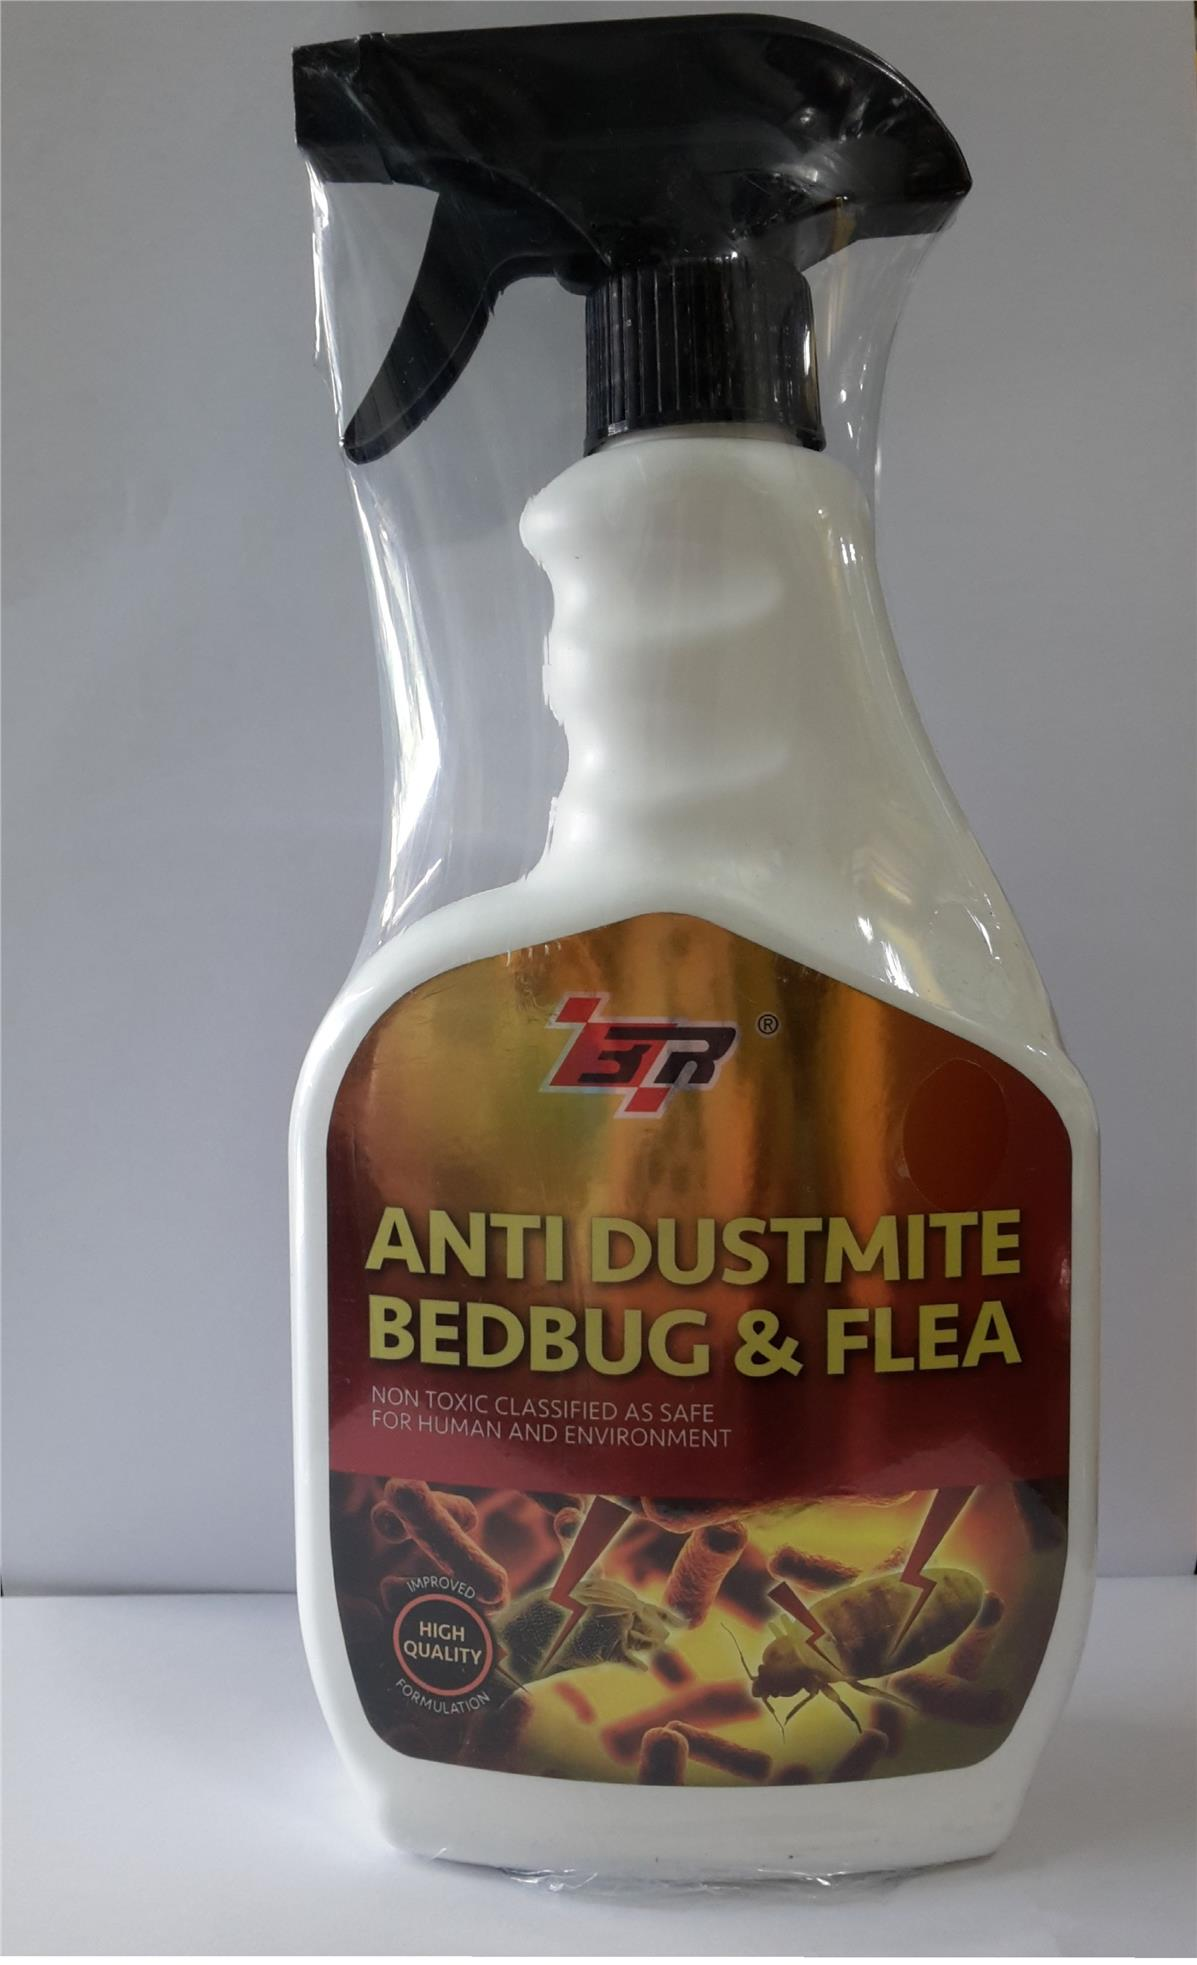 3R Anti Dustmite Bedbug & Flea /500ml